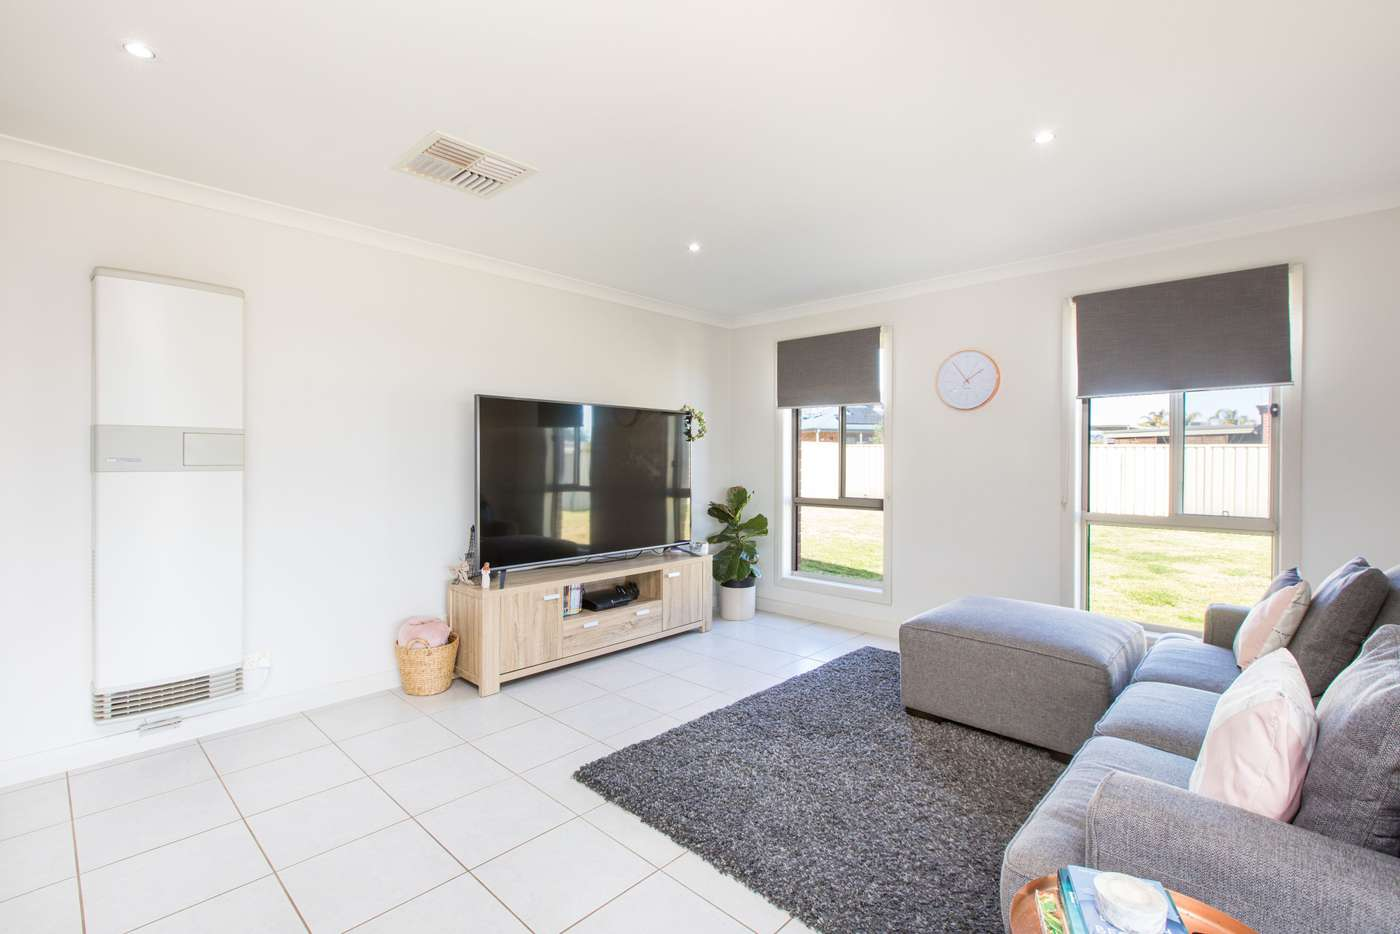 Seventh view of Homely house listing, 22 Wirraway Drive, Mildura VIC 3500